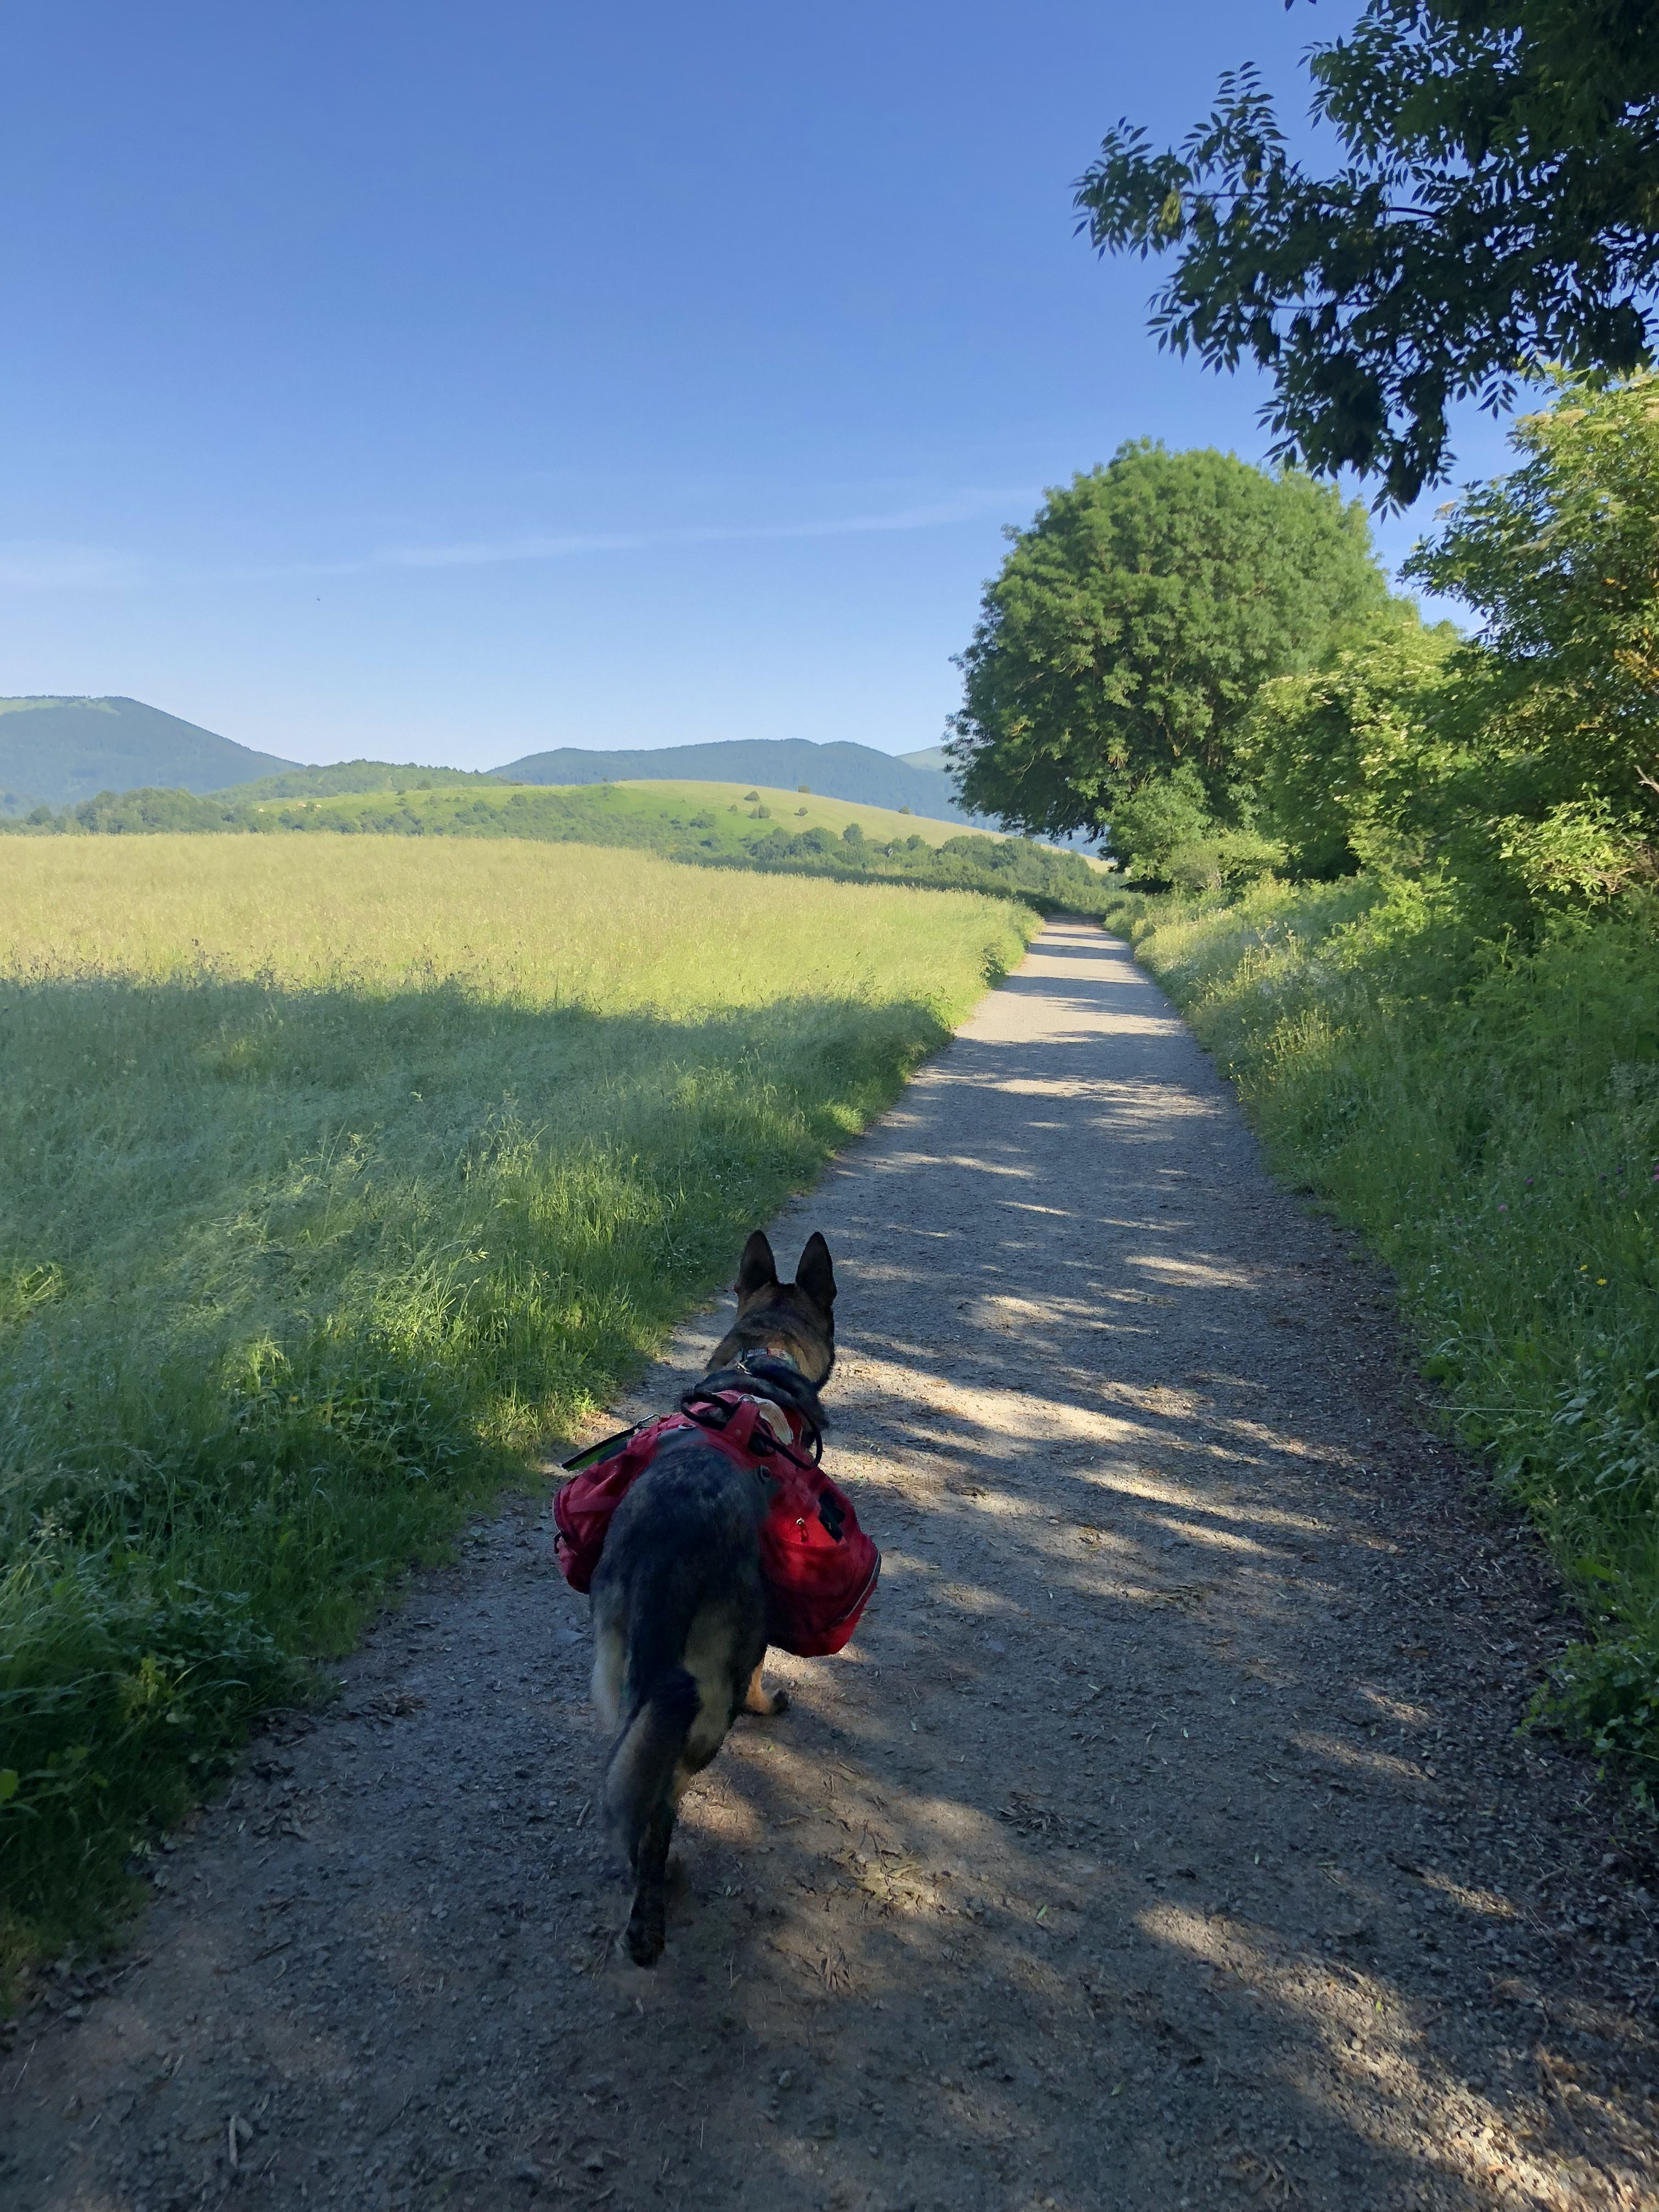 Day 2 – Roncesvalles to Zubiri